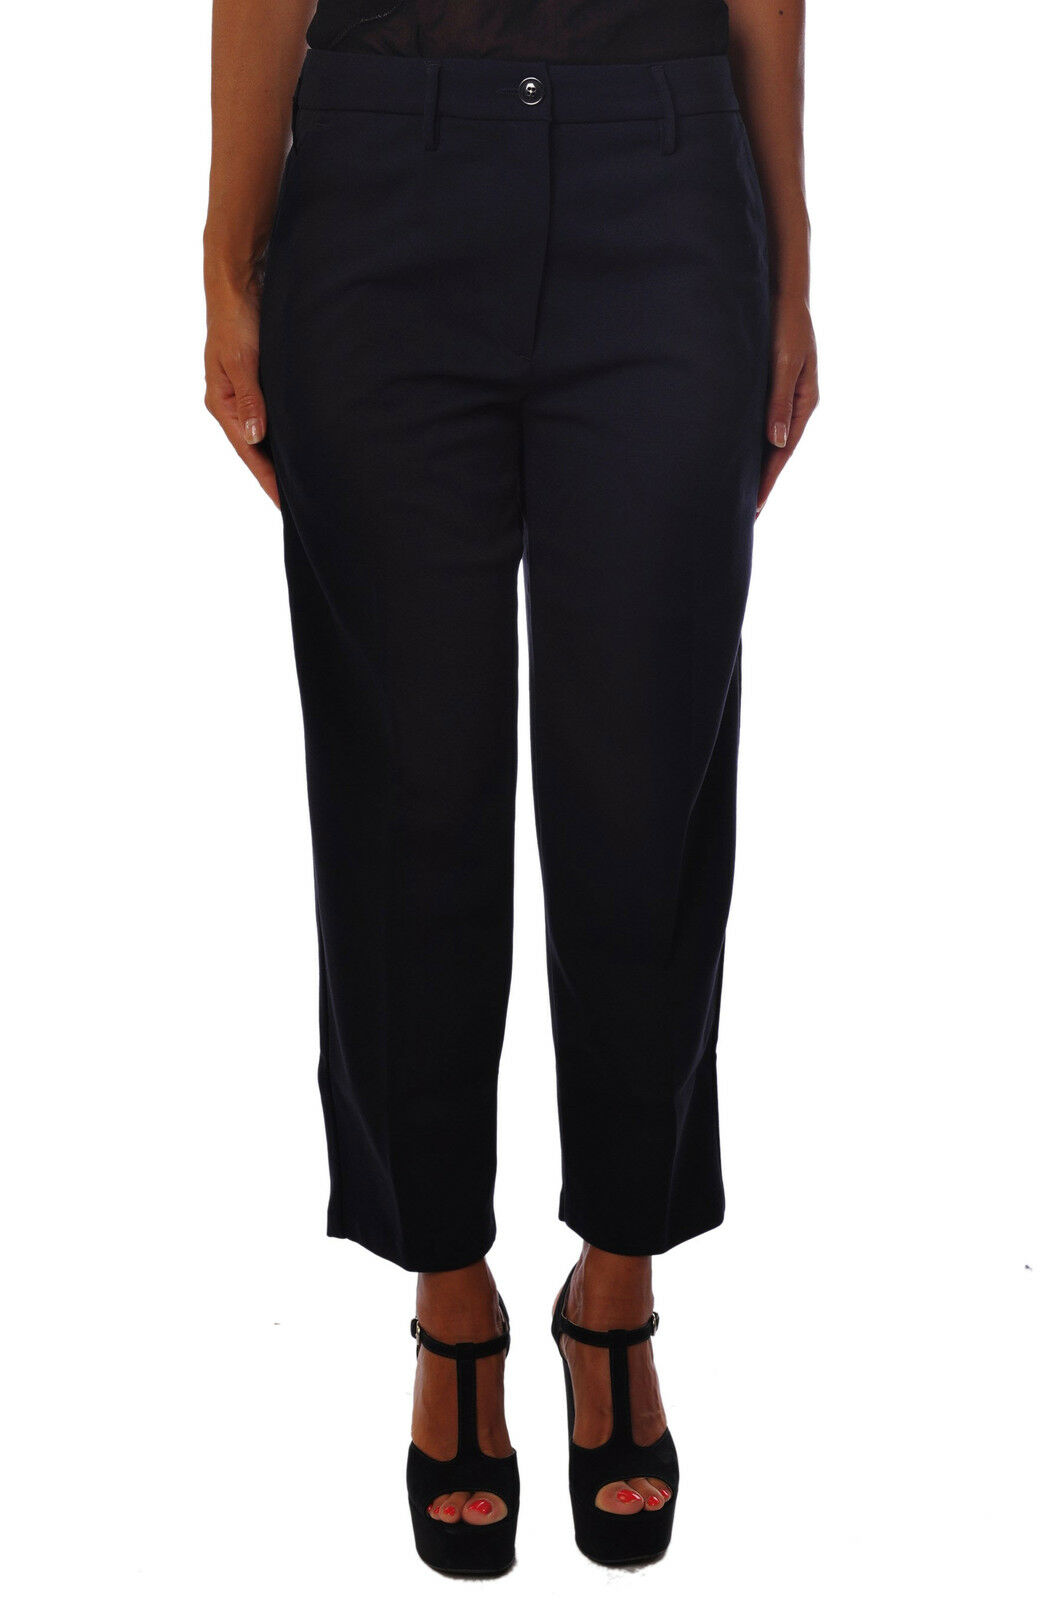 Department 5 - Pants-Pants - Woman - bluee - 1510310C190833